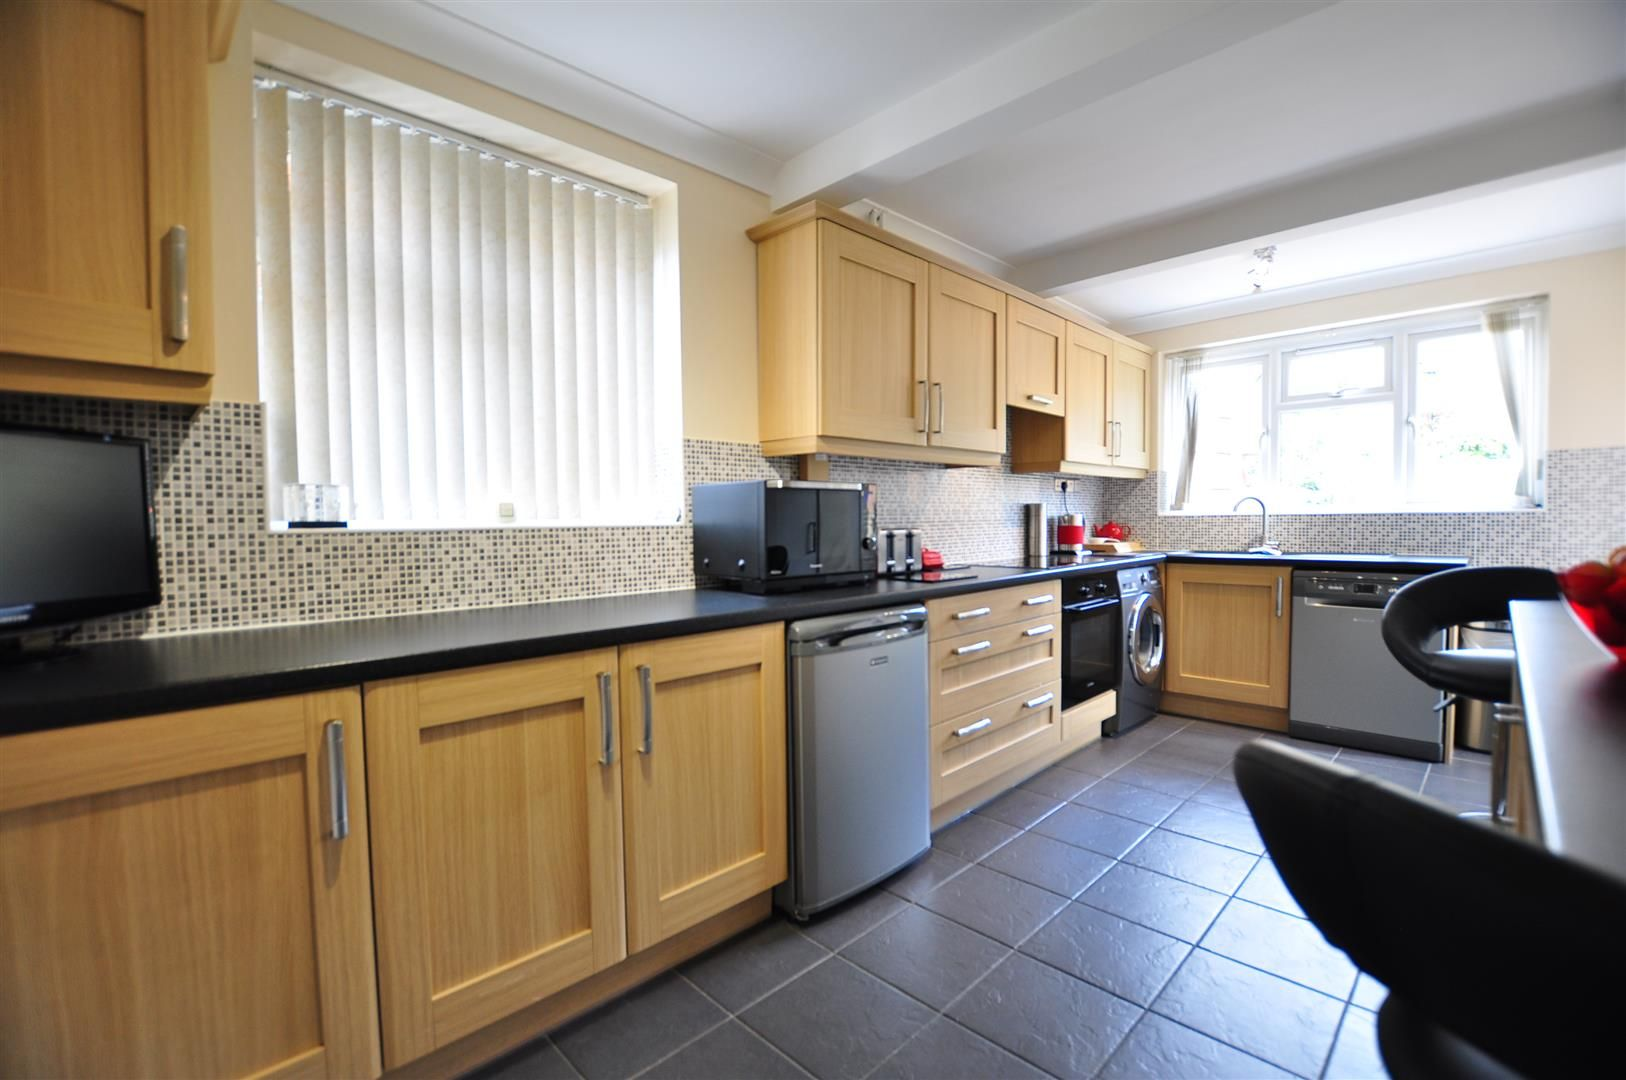 3 bed semi-detached for sale in Lower Gornal 2